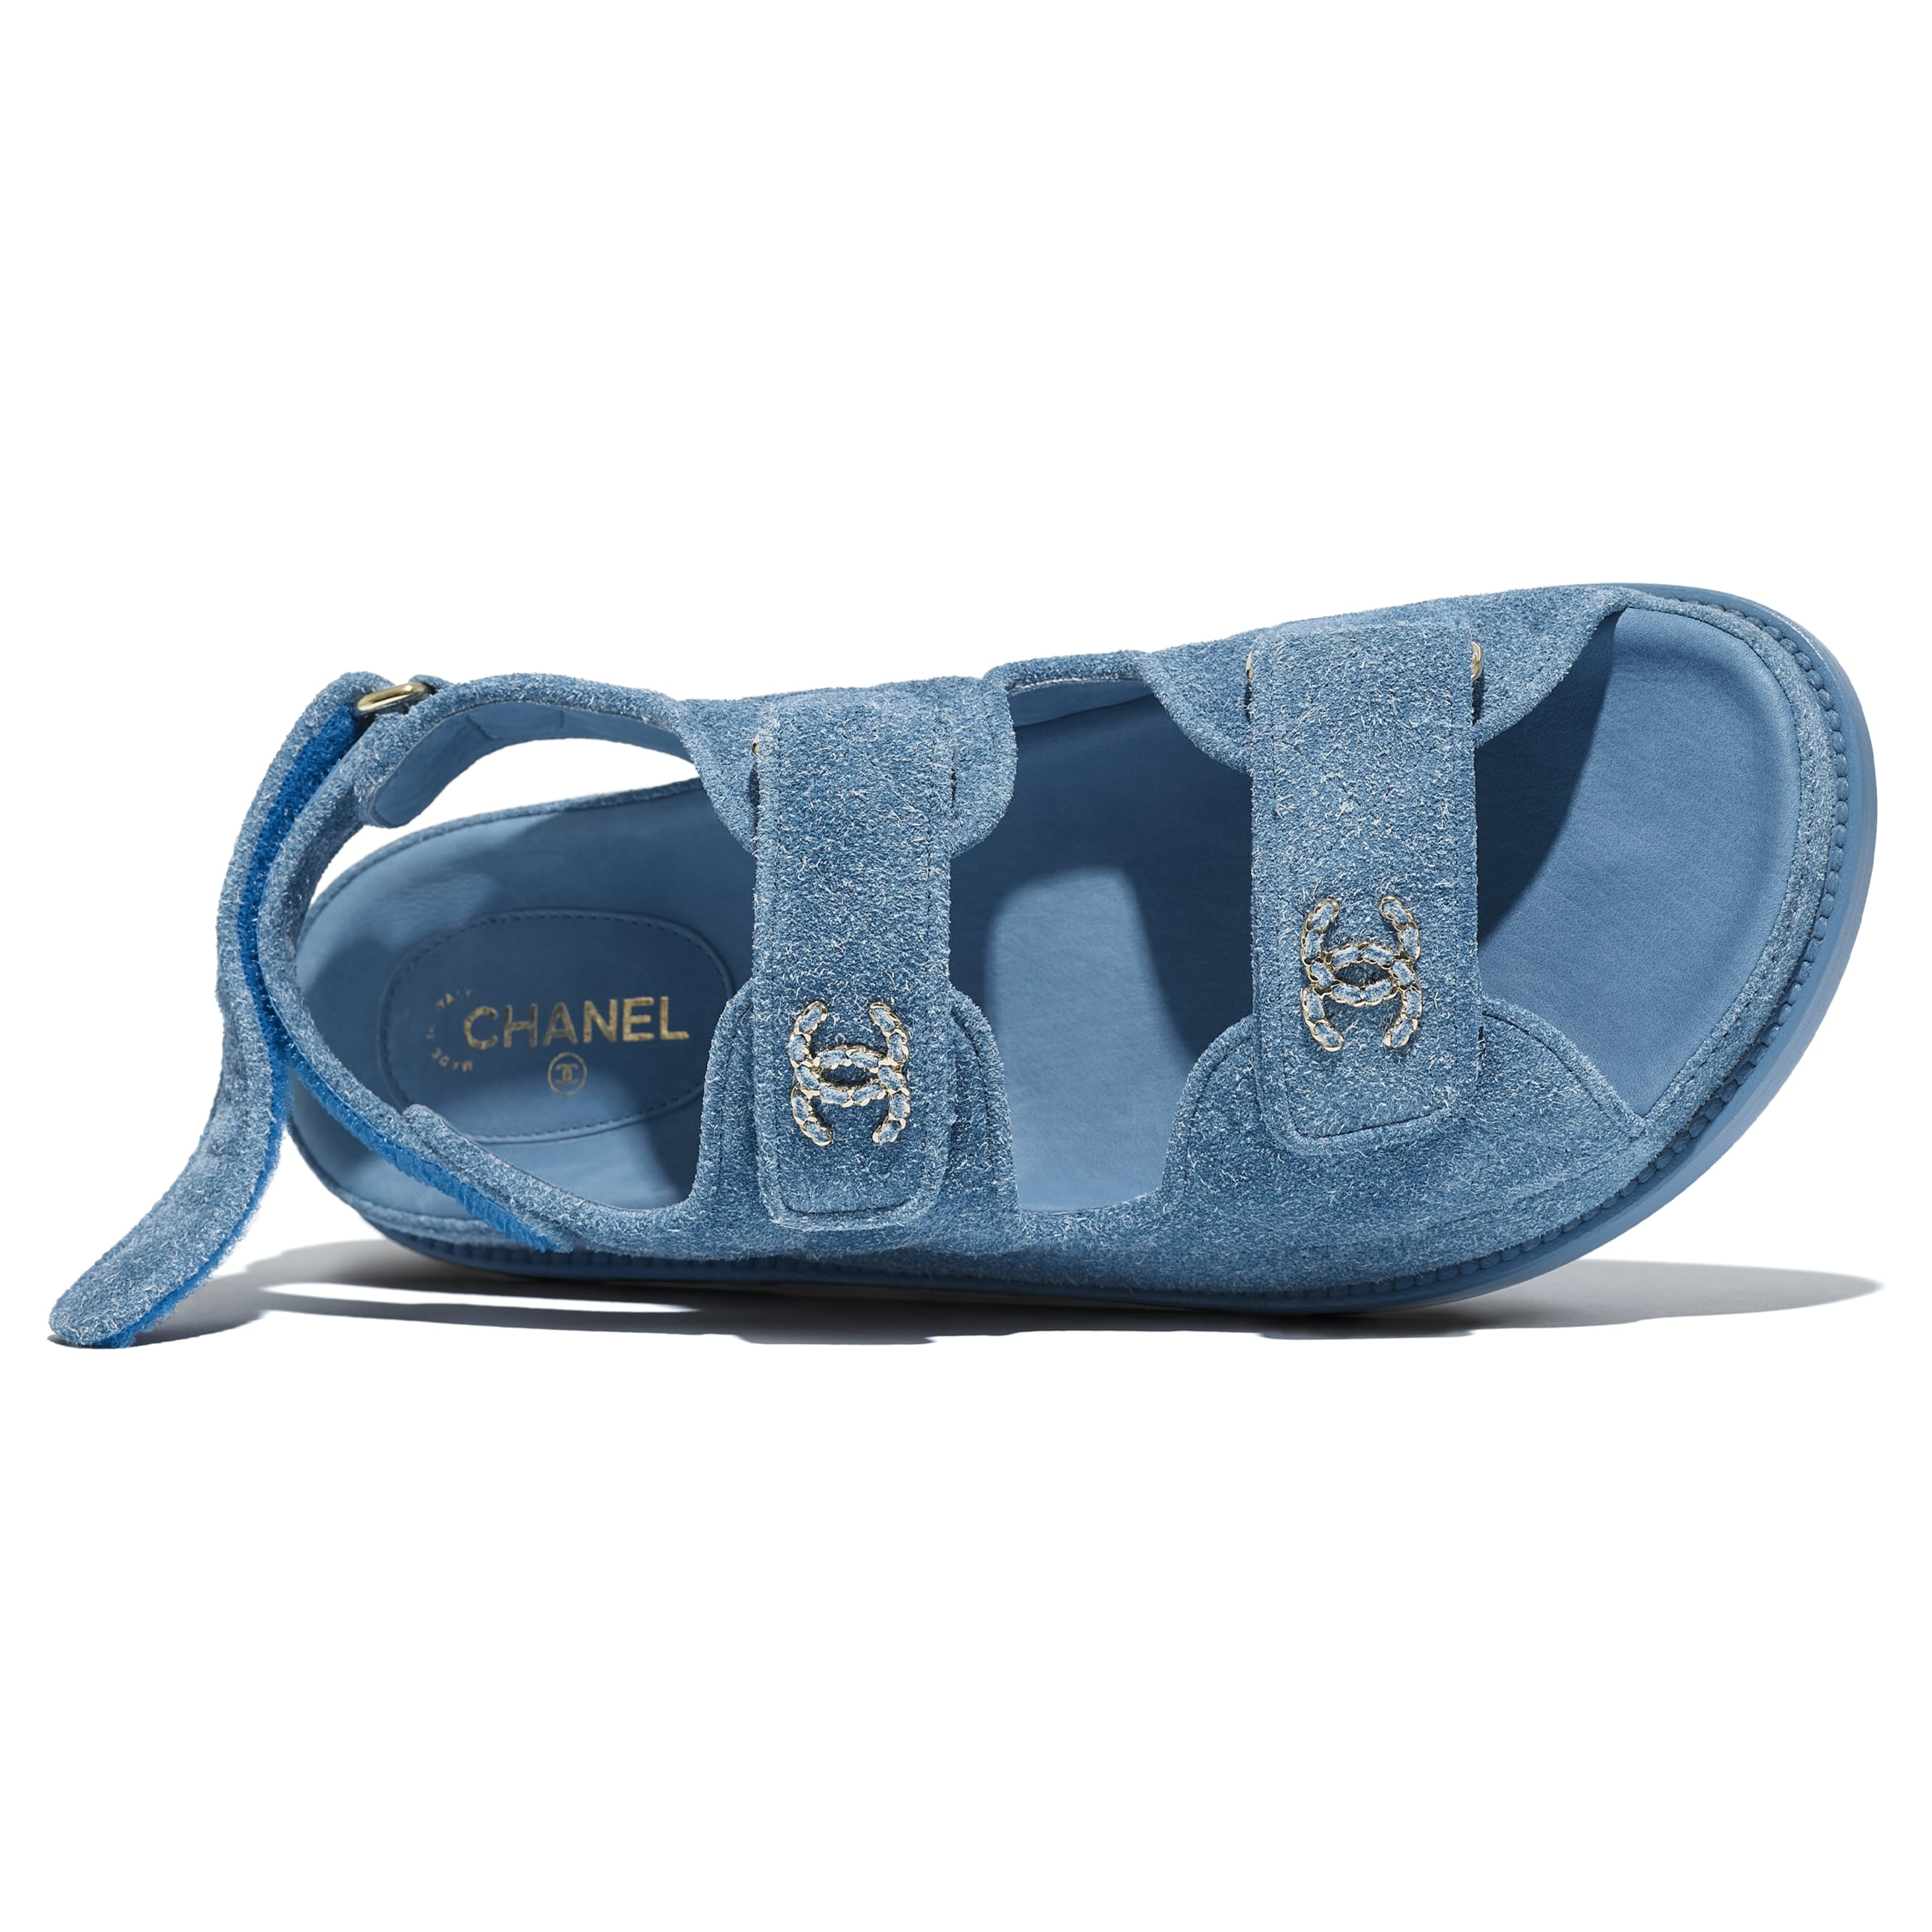 Sandals - Blue - Suede Calfskin - CHANEL - Extra view - see standard sized version